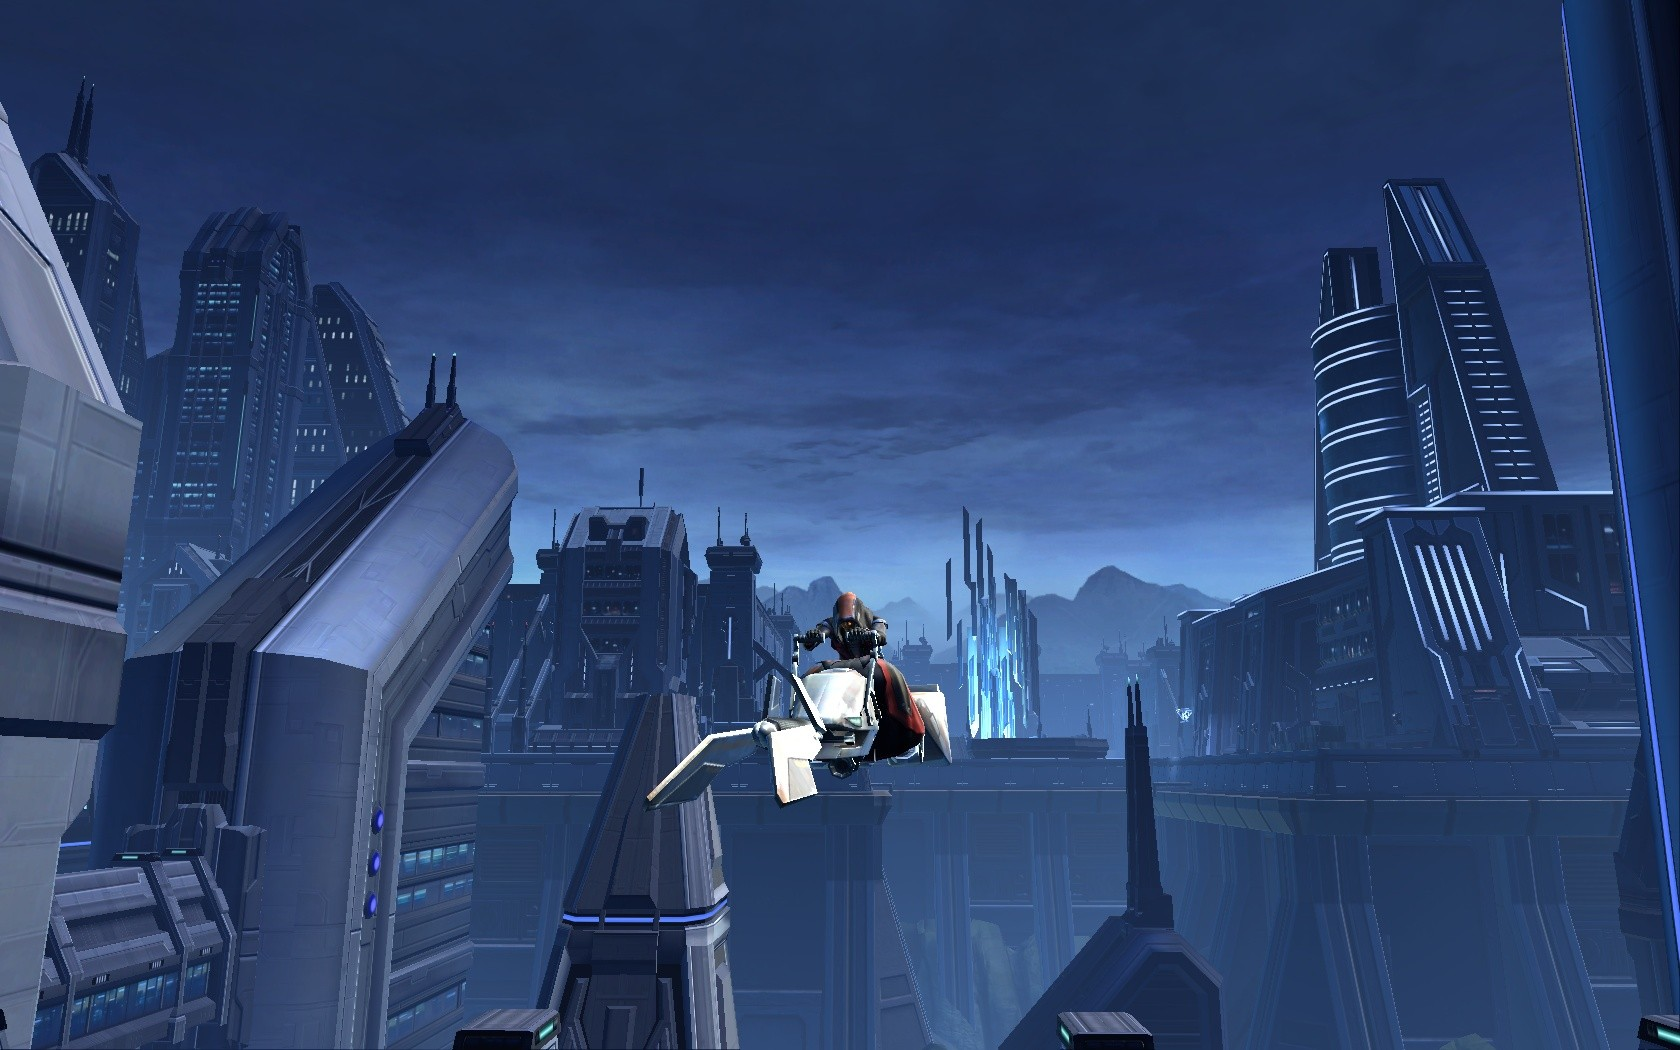 Star Wars: The Old Republic - On my way to get my ship!